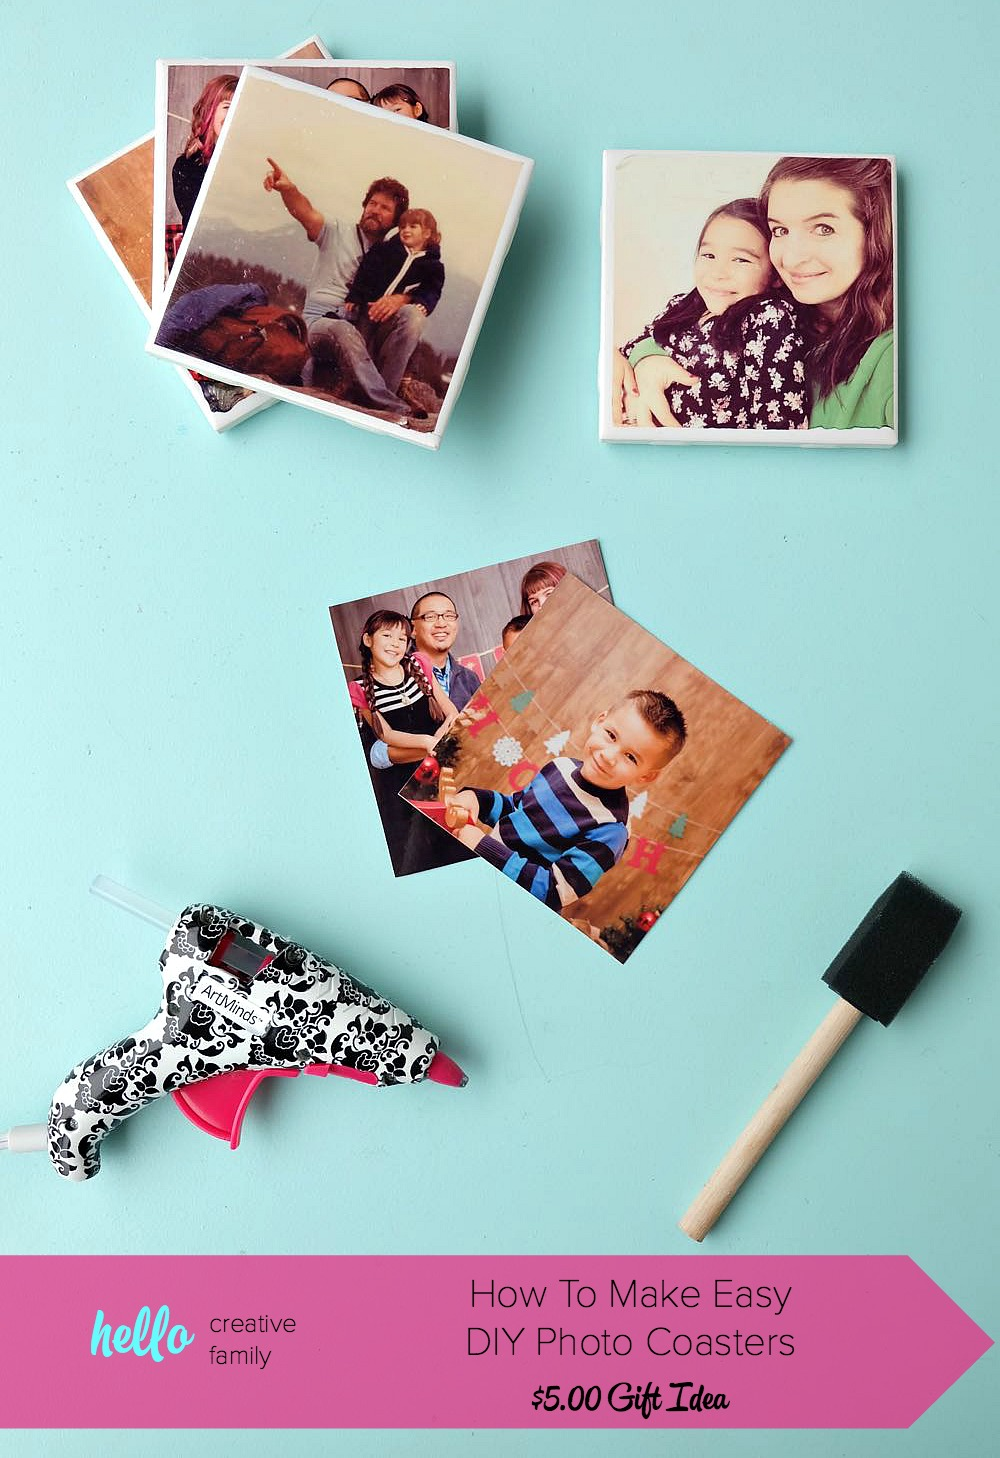 50 Easy Handmade Gift Ideas You'll Love: Easy DIY Photo Coasters